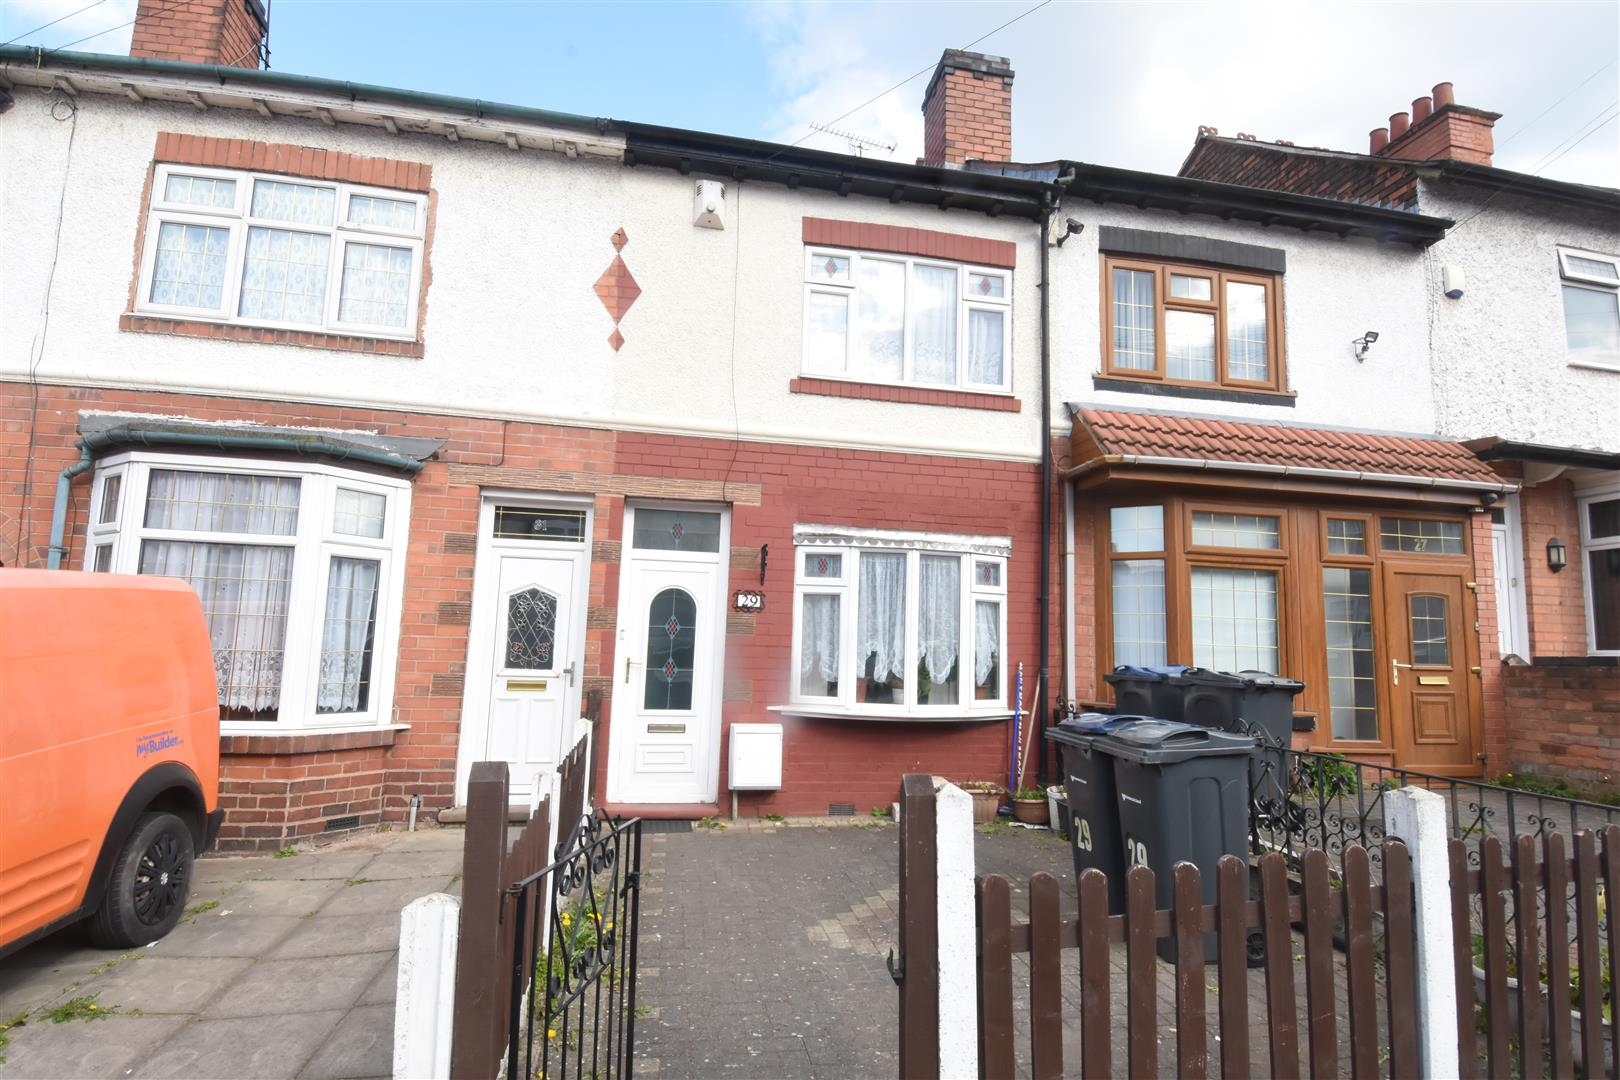 3 bed house for sale in William Cook Road, Ward End, BIRMINGHAM, B8